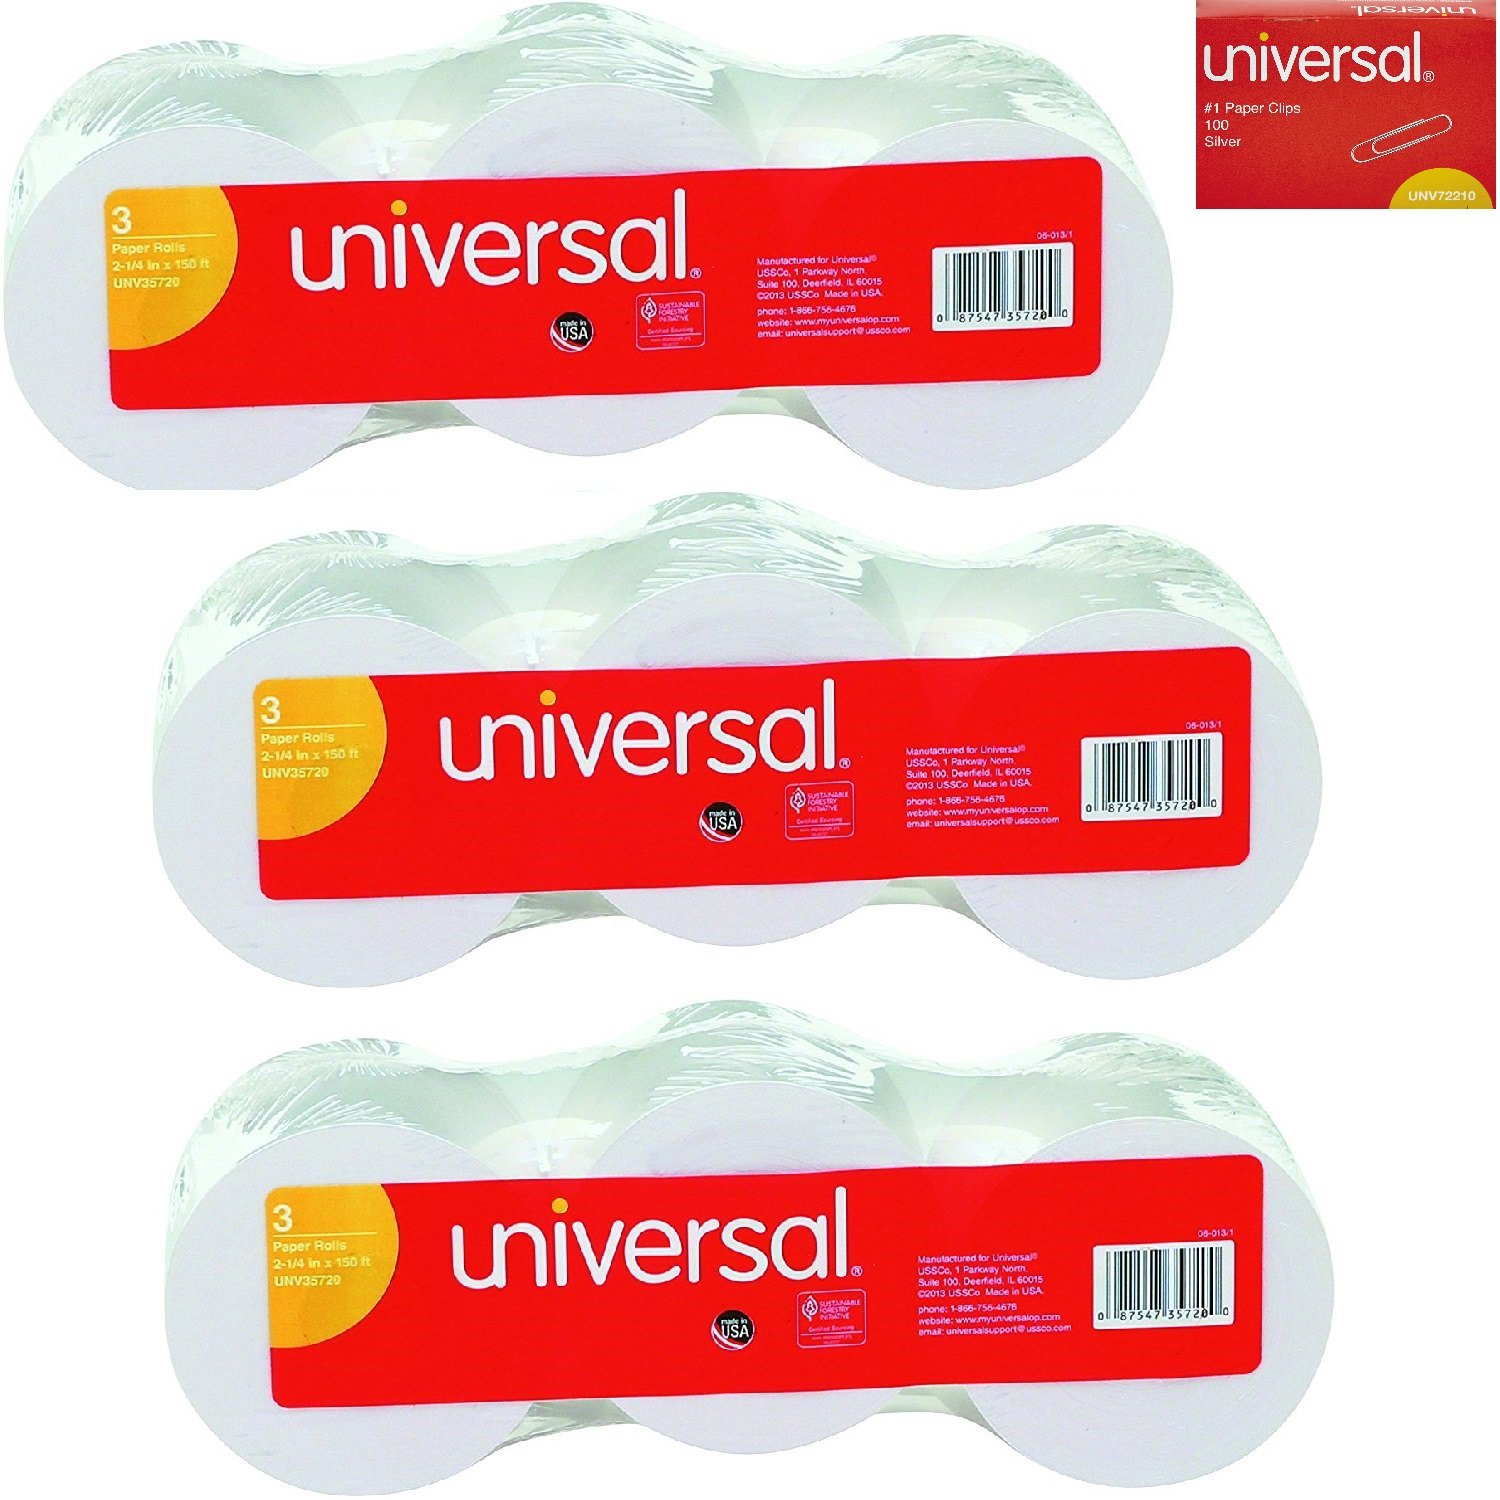 Universal 35720 Adding Machine/Calculator Roll, 16 lb, 1/2 Core, 2-1/4 x 150 ft, White (Pack of 9) Bundle with Dozen Paper Clips